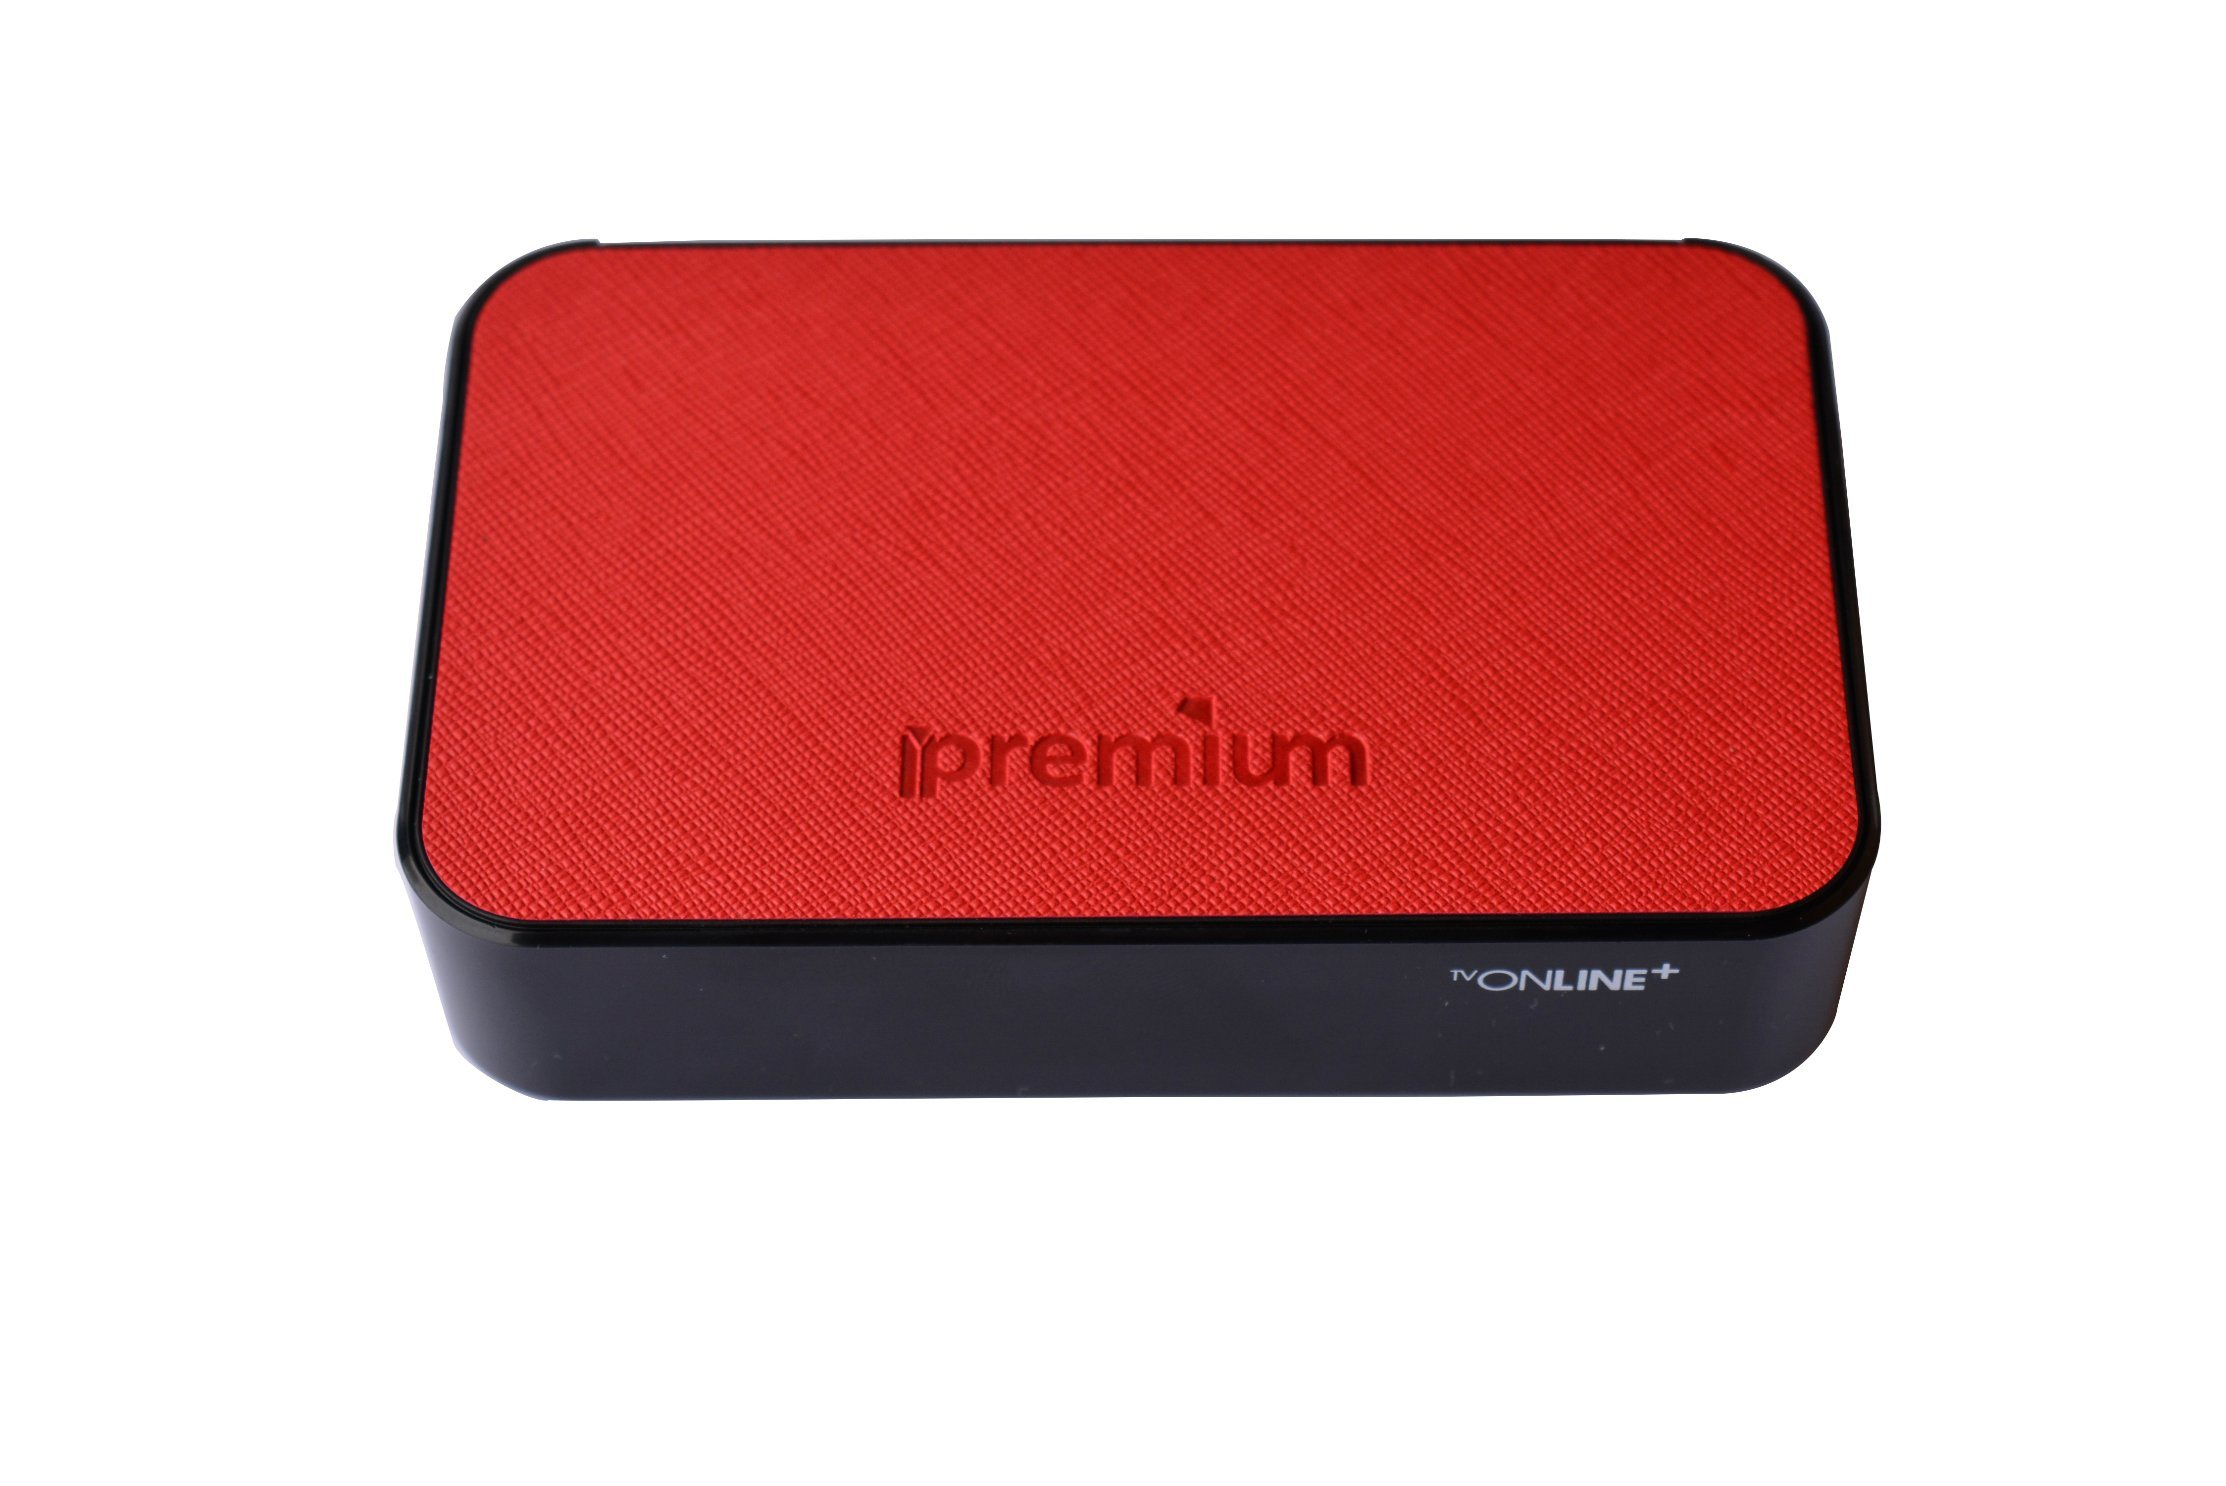 China Ipremium Tvonline+ with Leather Cover Mickyhop System and